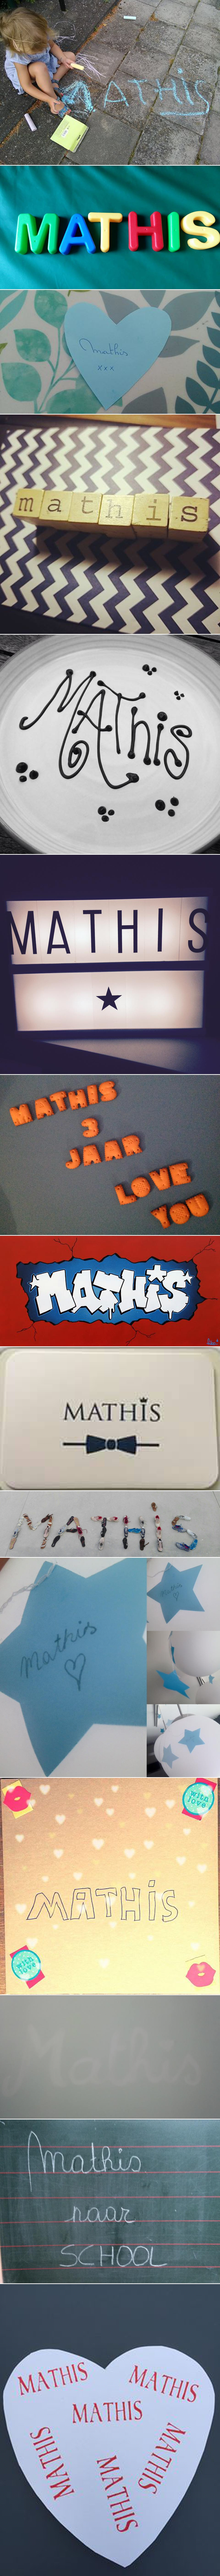 2016-naamcollage-mathis-1